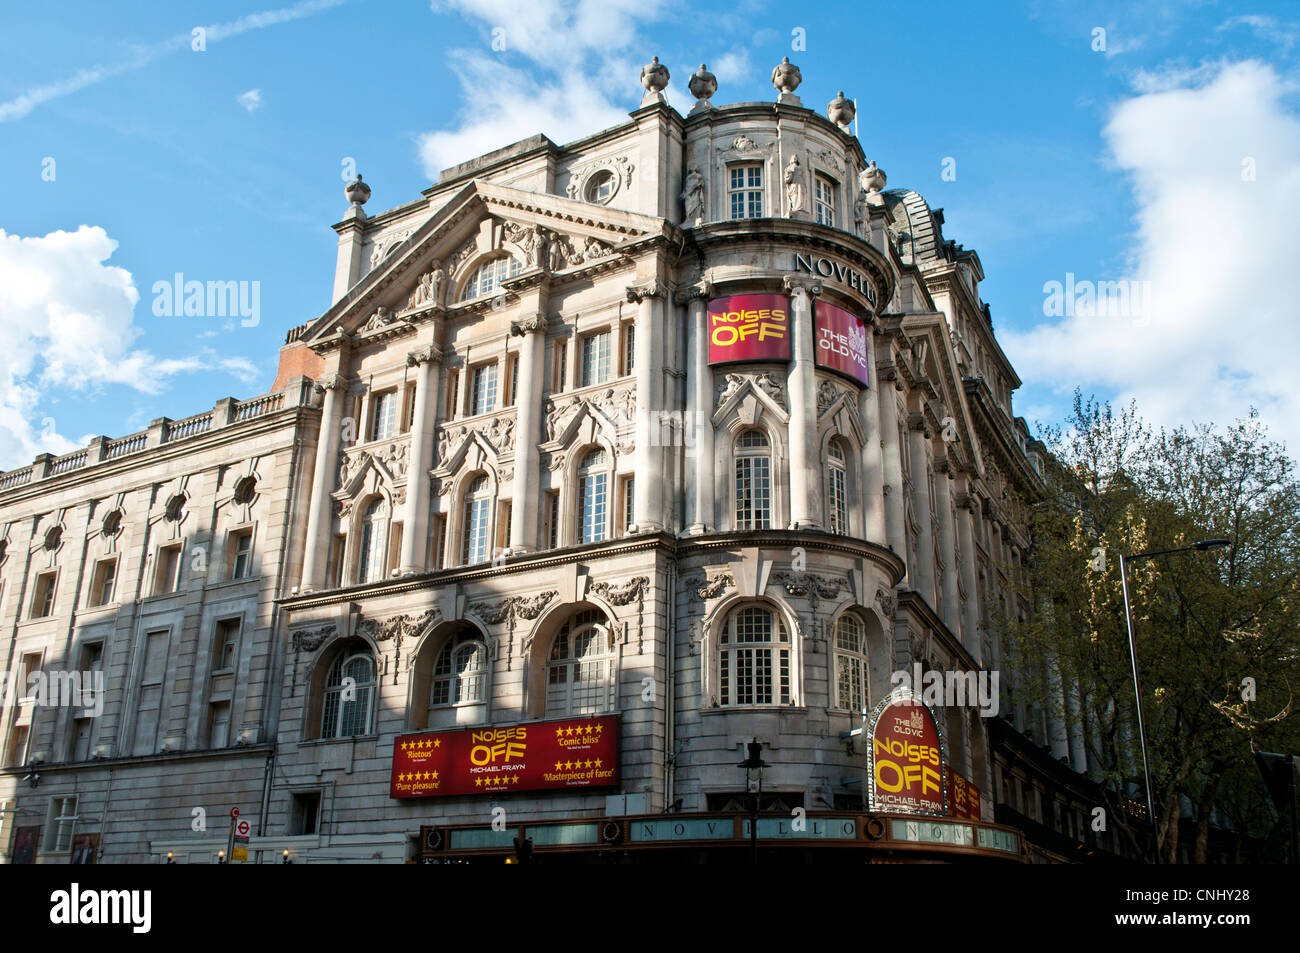 Novello Theatre with Noises Off play, West End, London, UK - Stock Image